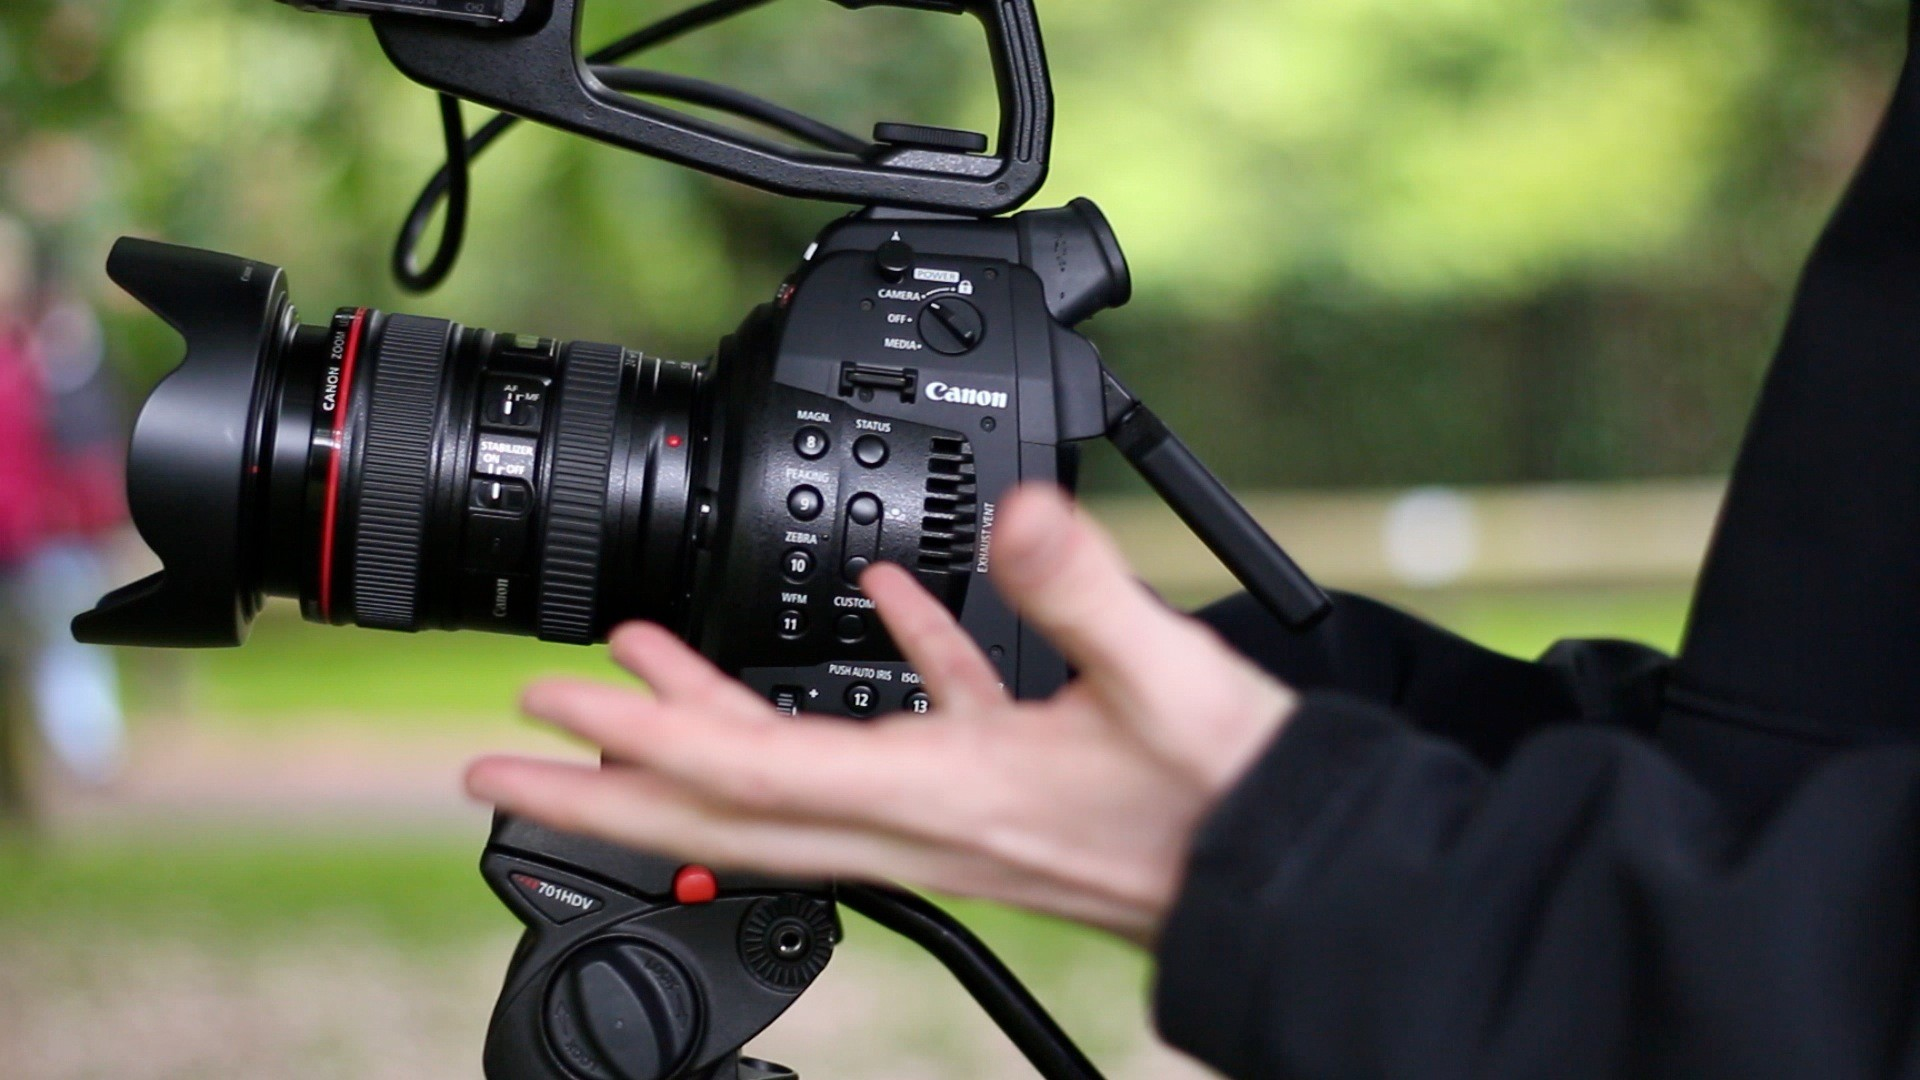 Canon cinema eos c100 and c300 daf models receive firmware 2. 1. 6. 1. 00.